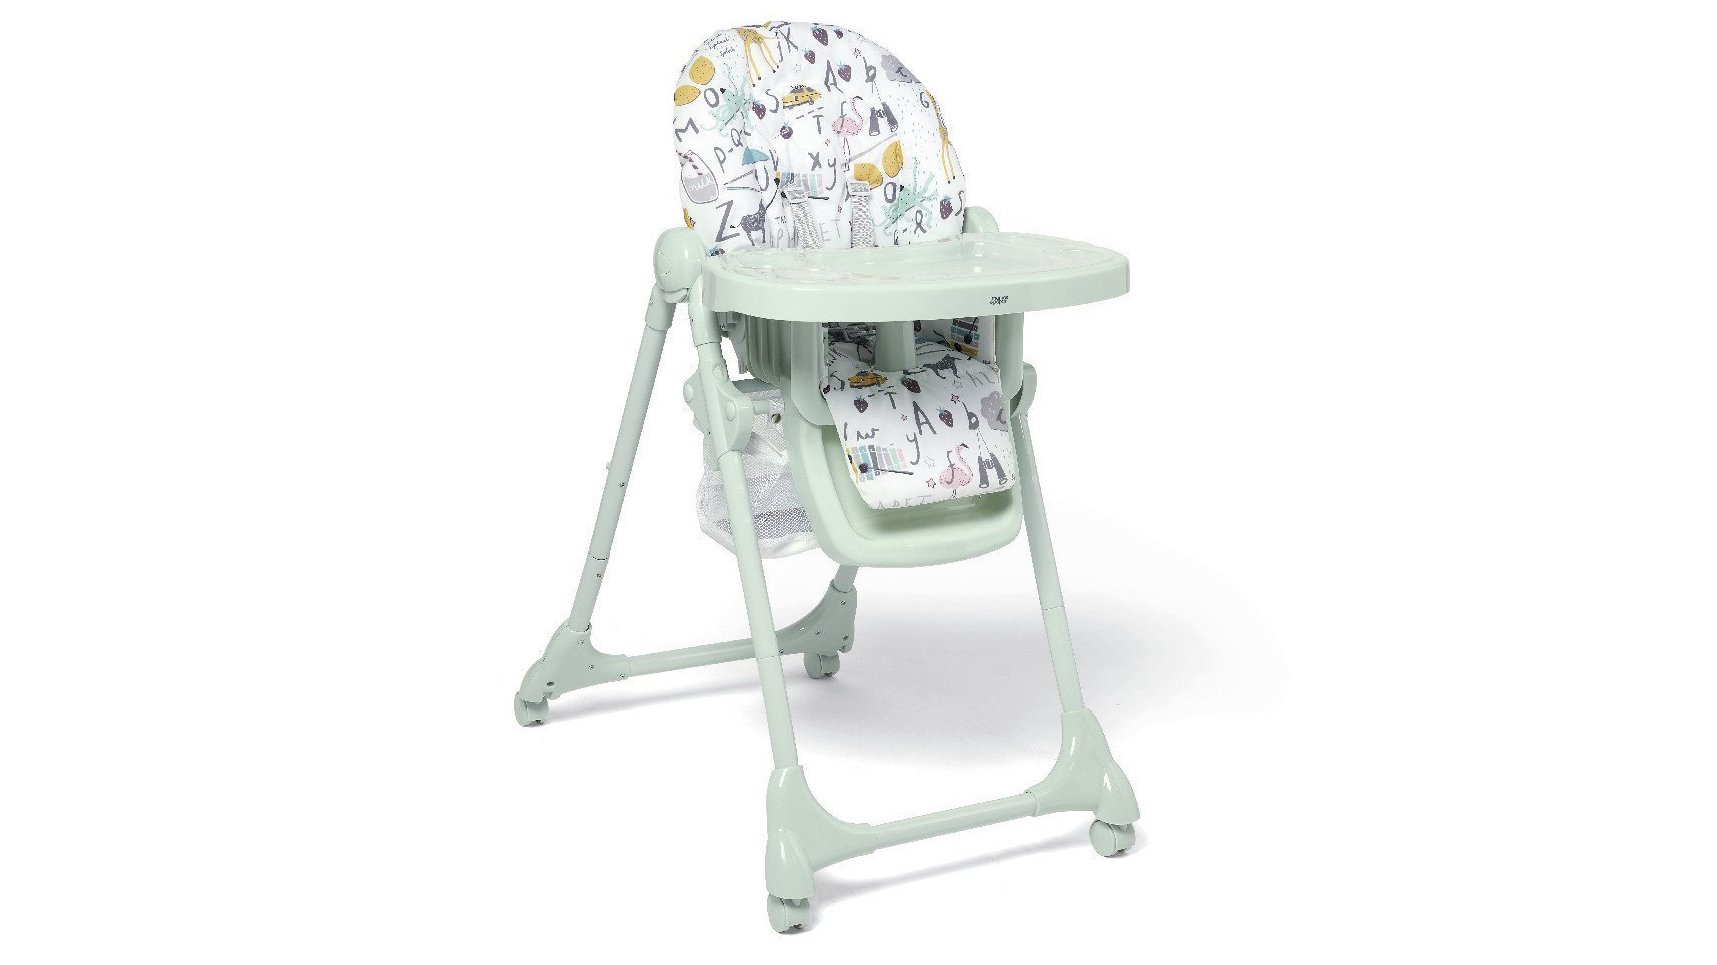 a0c8e08ca8b8b The Snax high chair comes with an extra-comfy padded seat and three  reclining positions